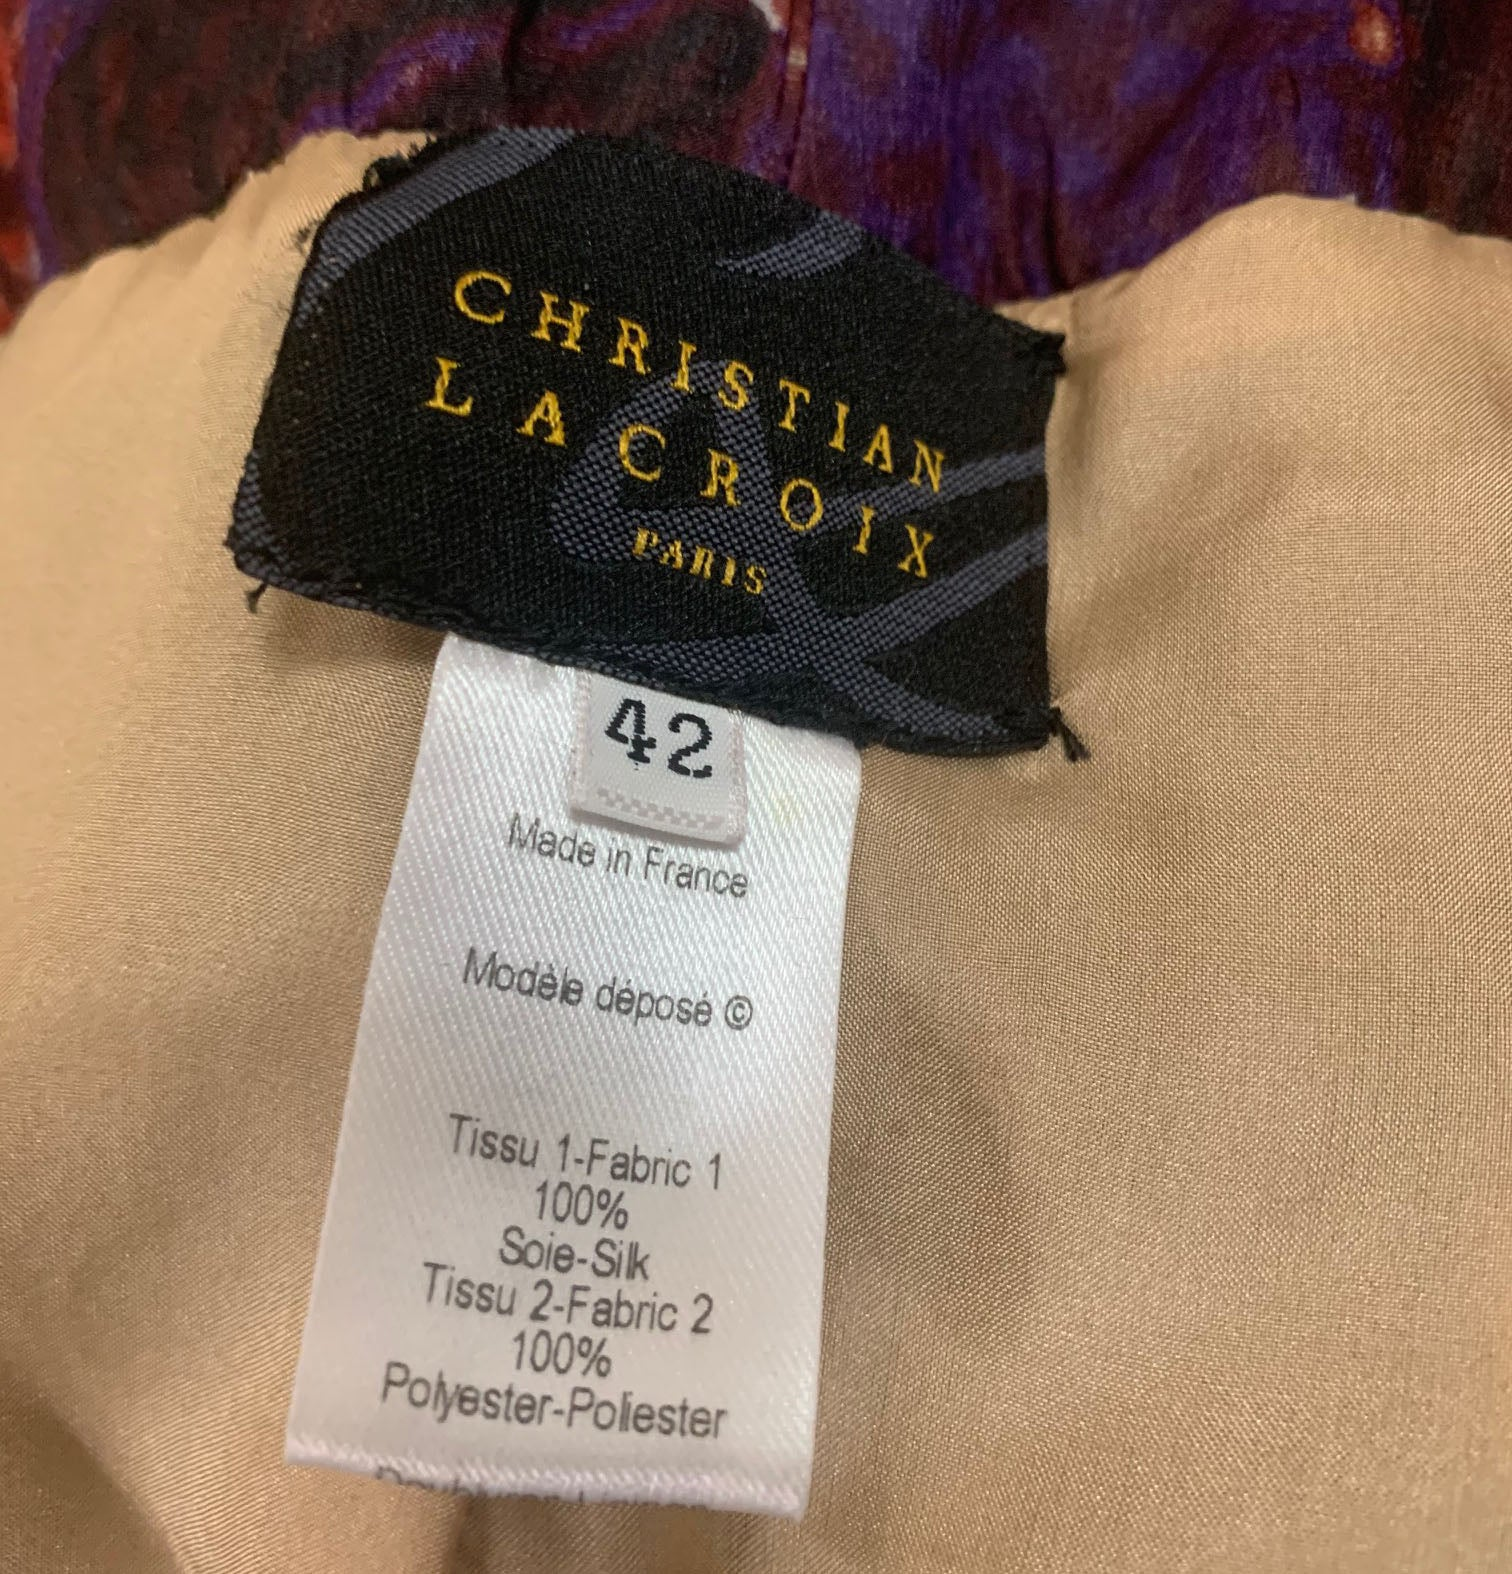 Christian Lacroix Boldly Printed Strapless Gown LABEL 5 of 5